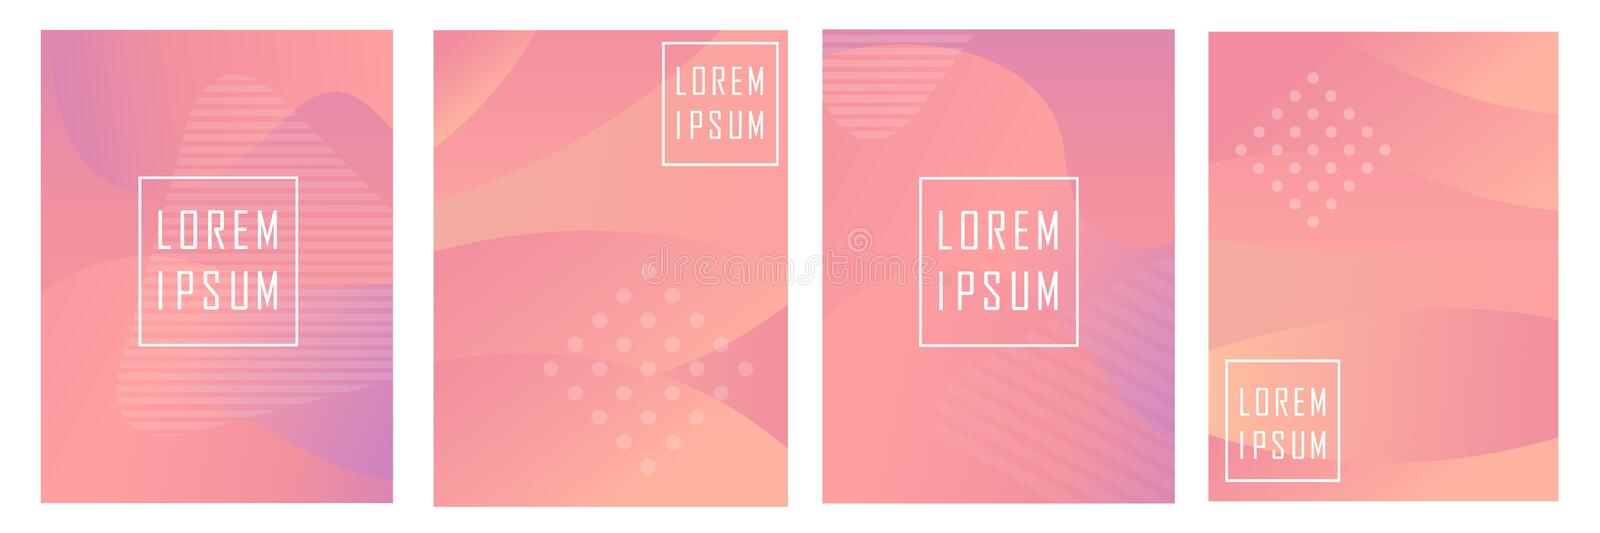 abstract background for cover design stock photo